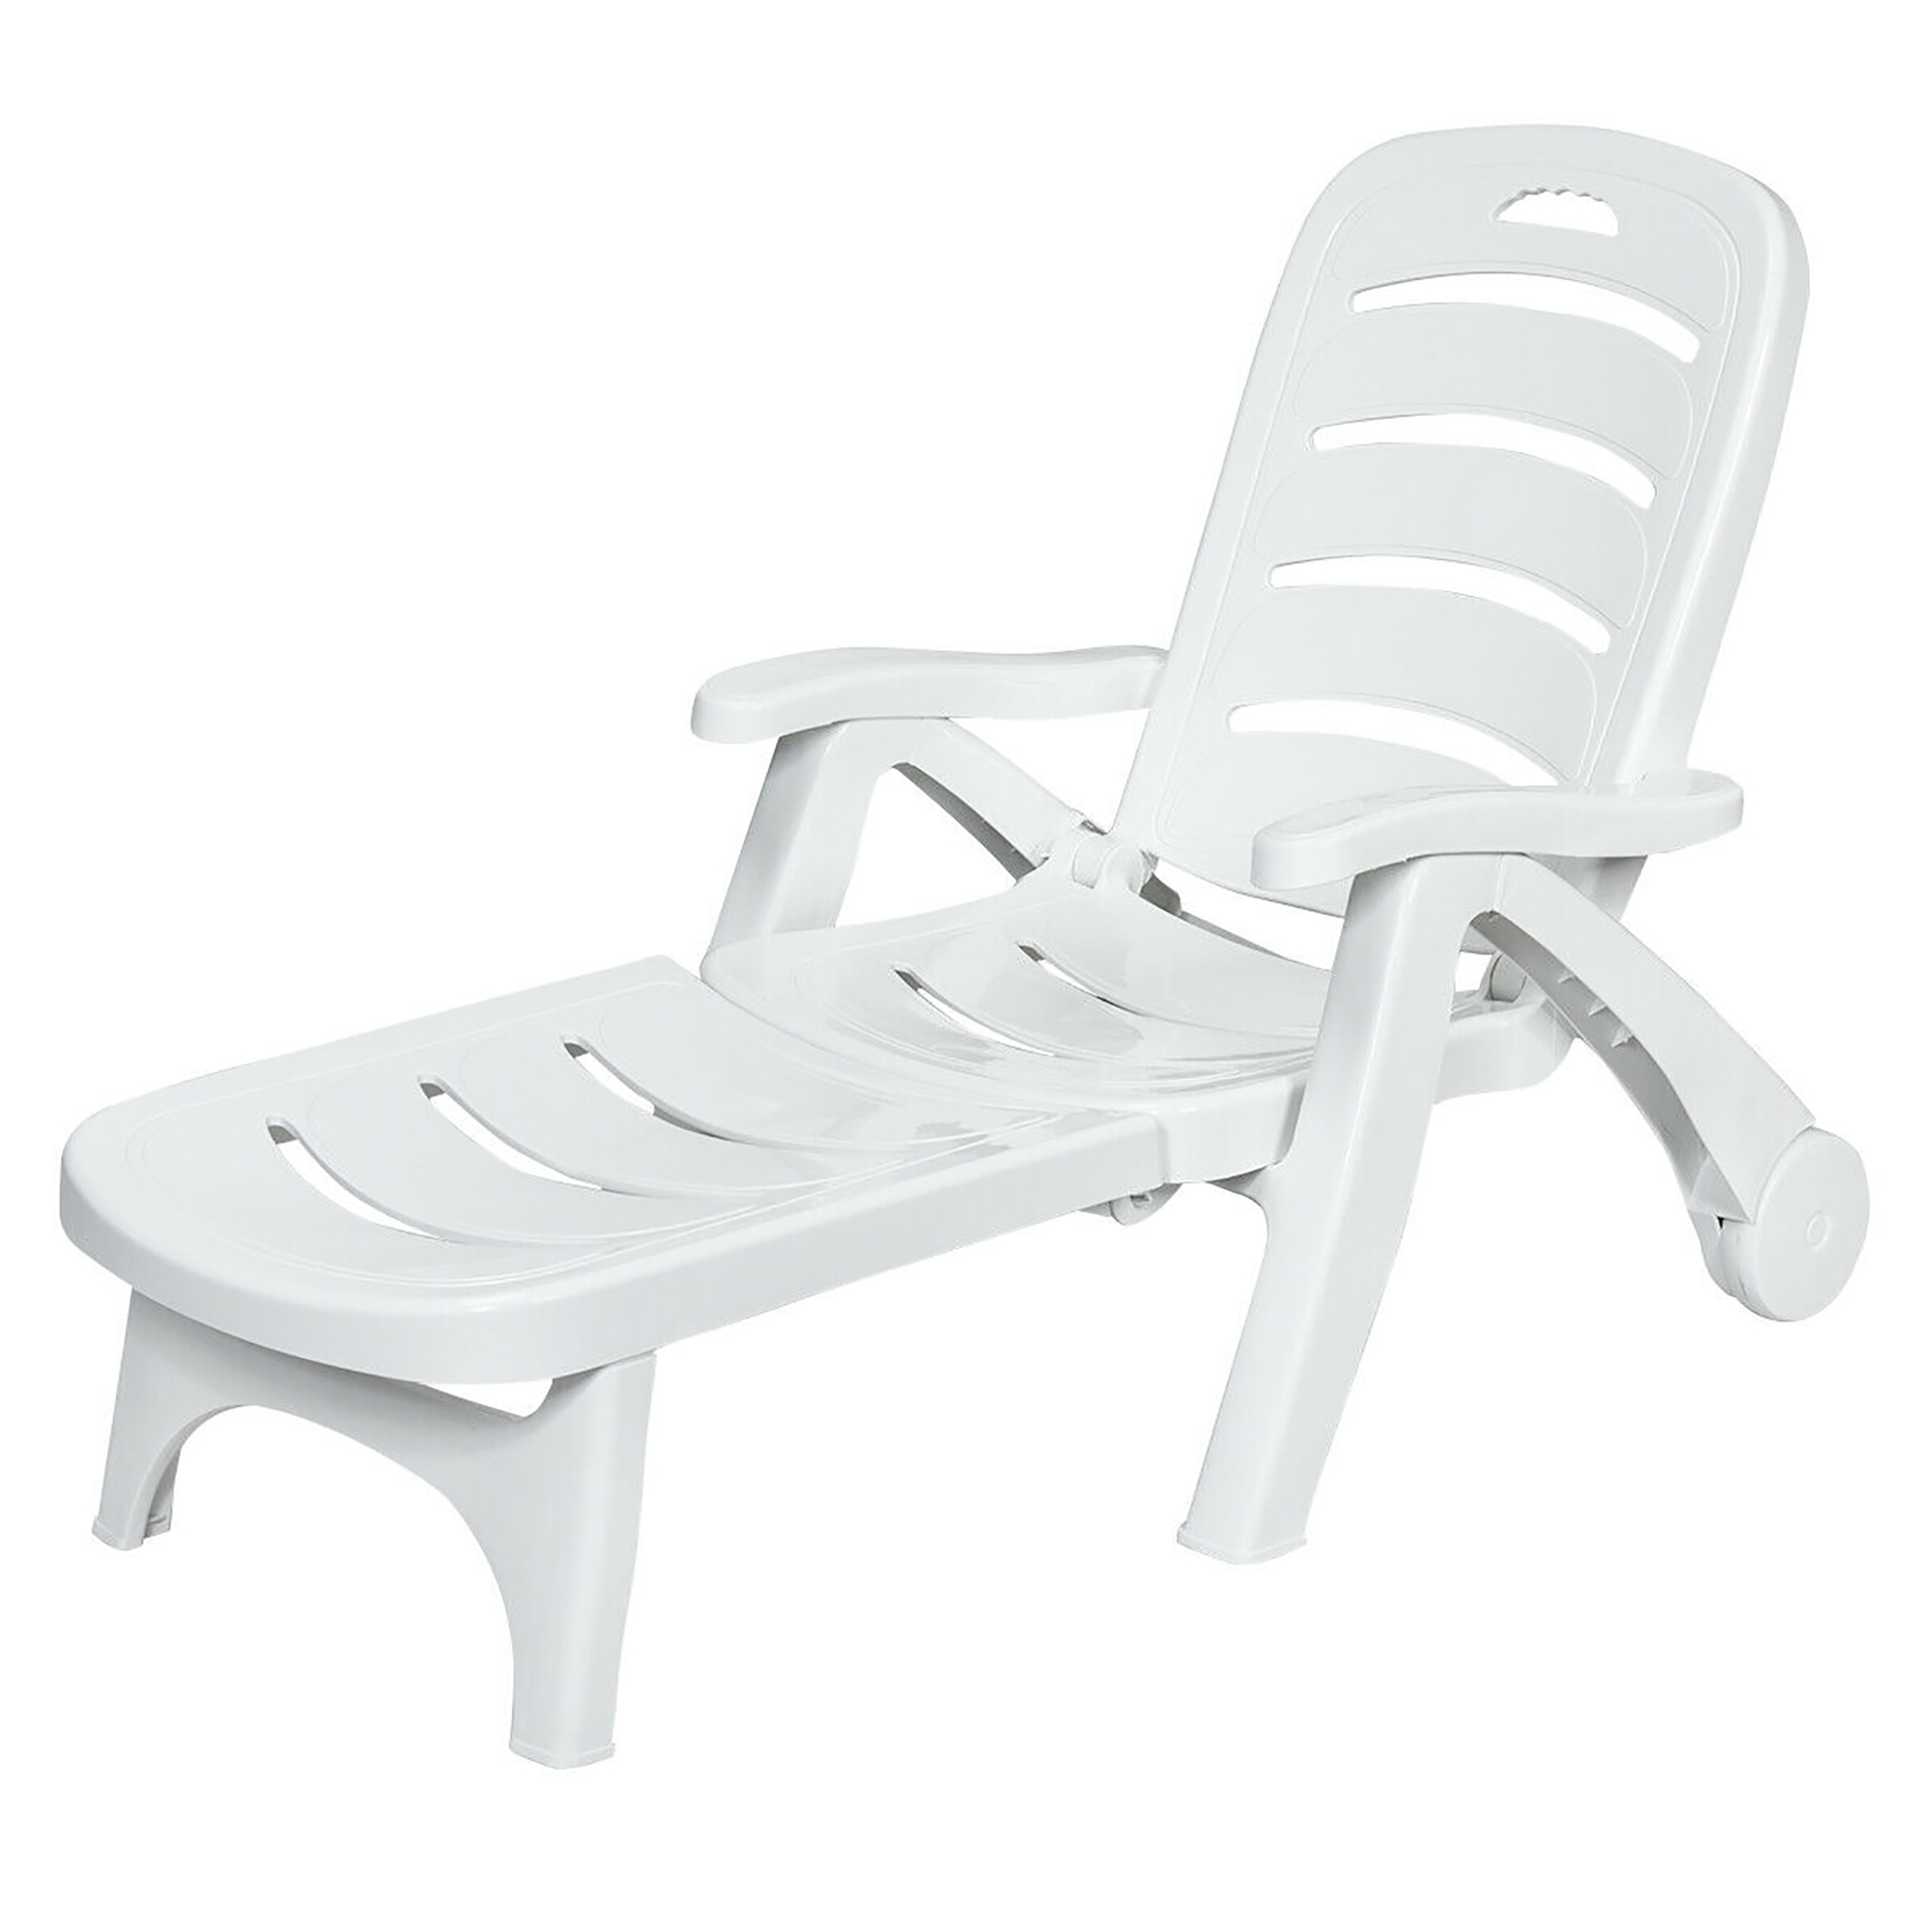 costway adjustable folding patio chaise deck chair lounger 5 position recliner w wheels